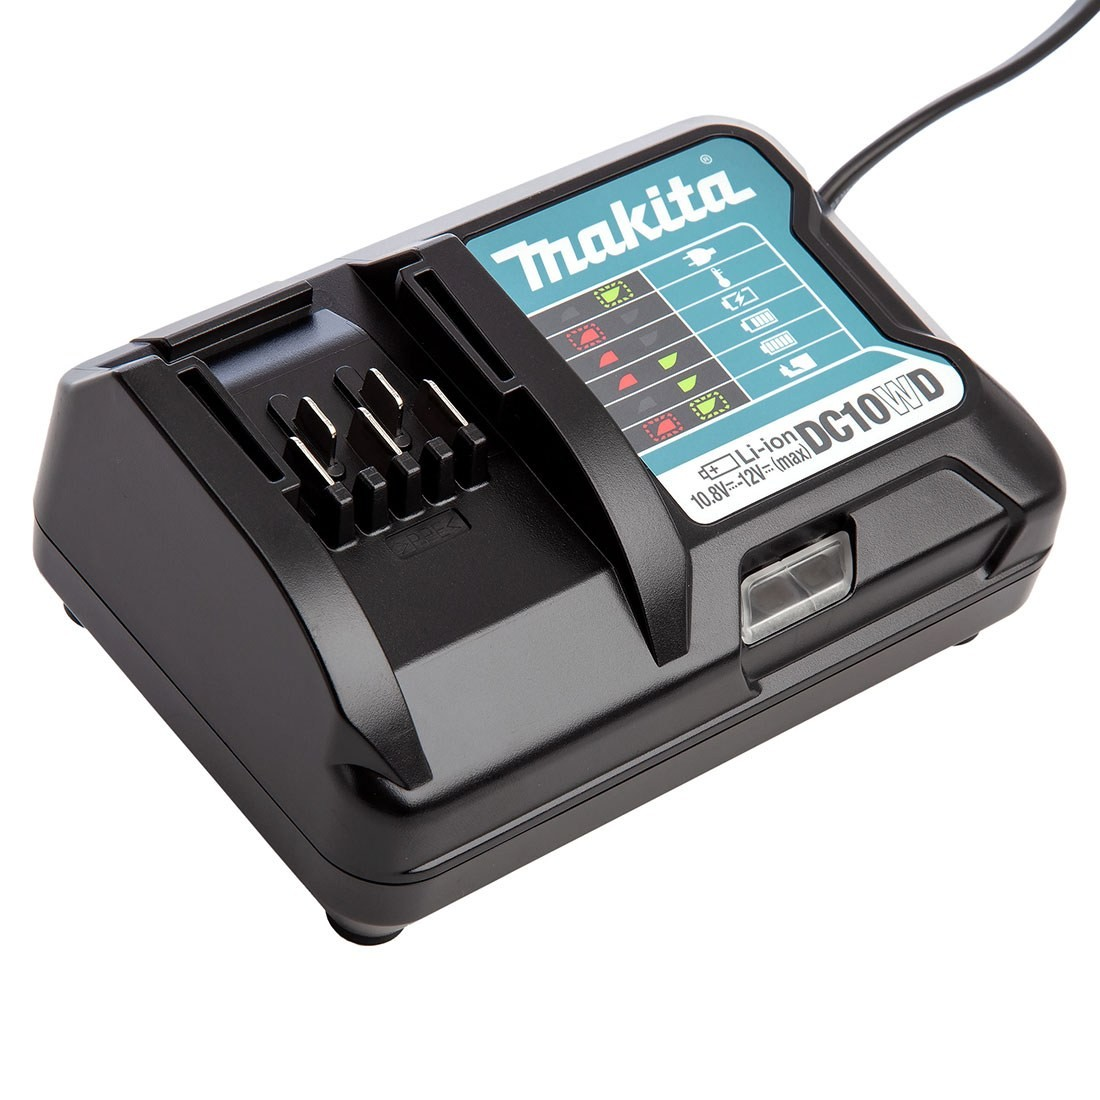 Makita Dc10wc Dc10wd 10 8v 12v Max Cxt Slide Lithium Ion Battery Charger Powertool World